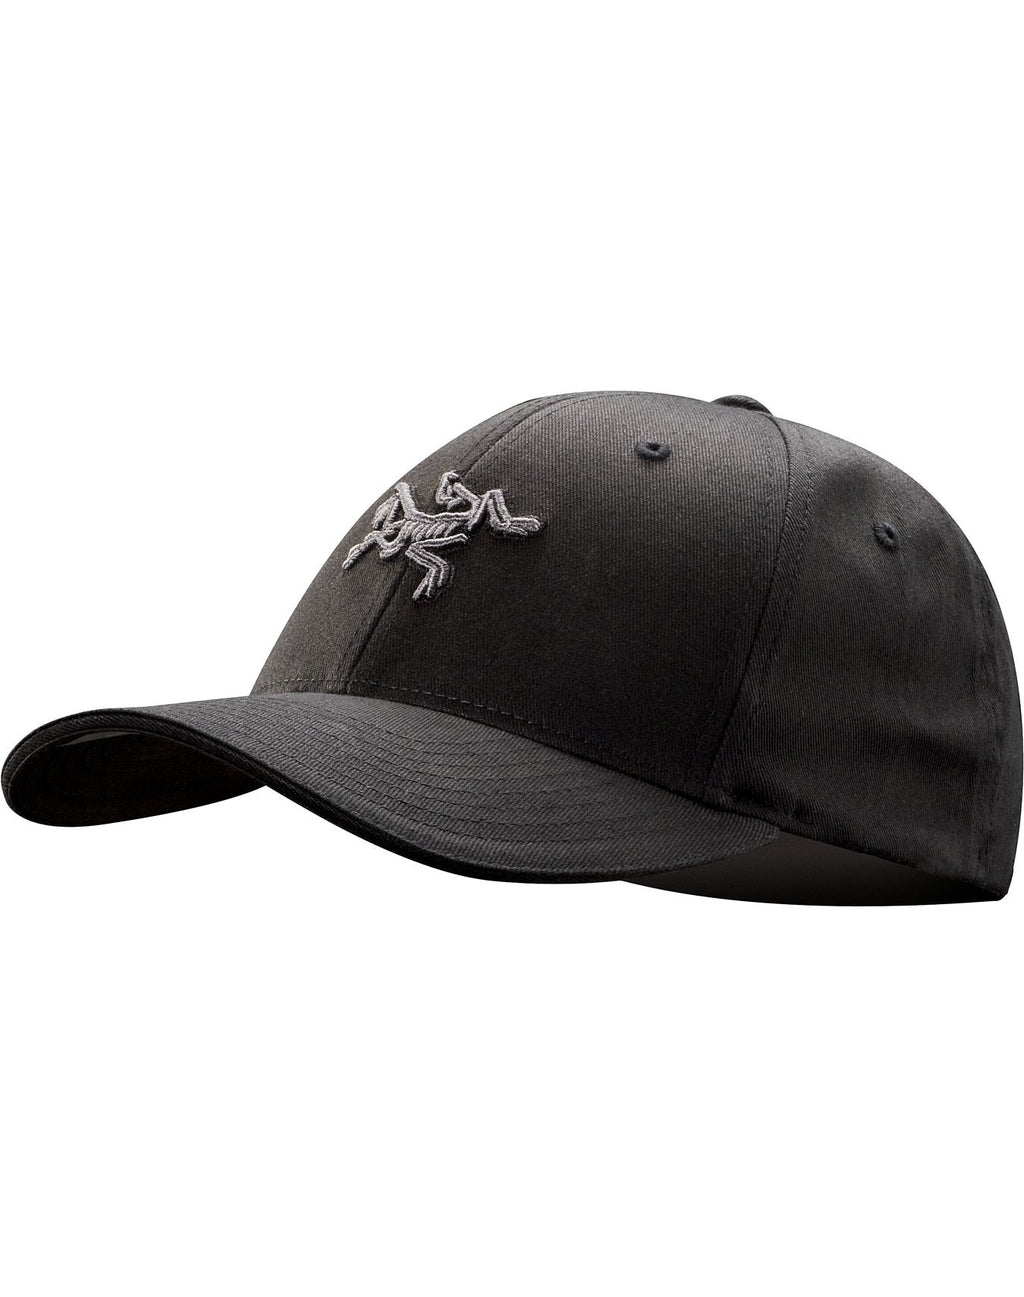 Arc'teryx Embroidered Bird Cap / Black